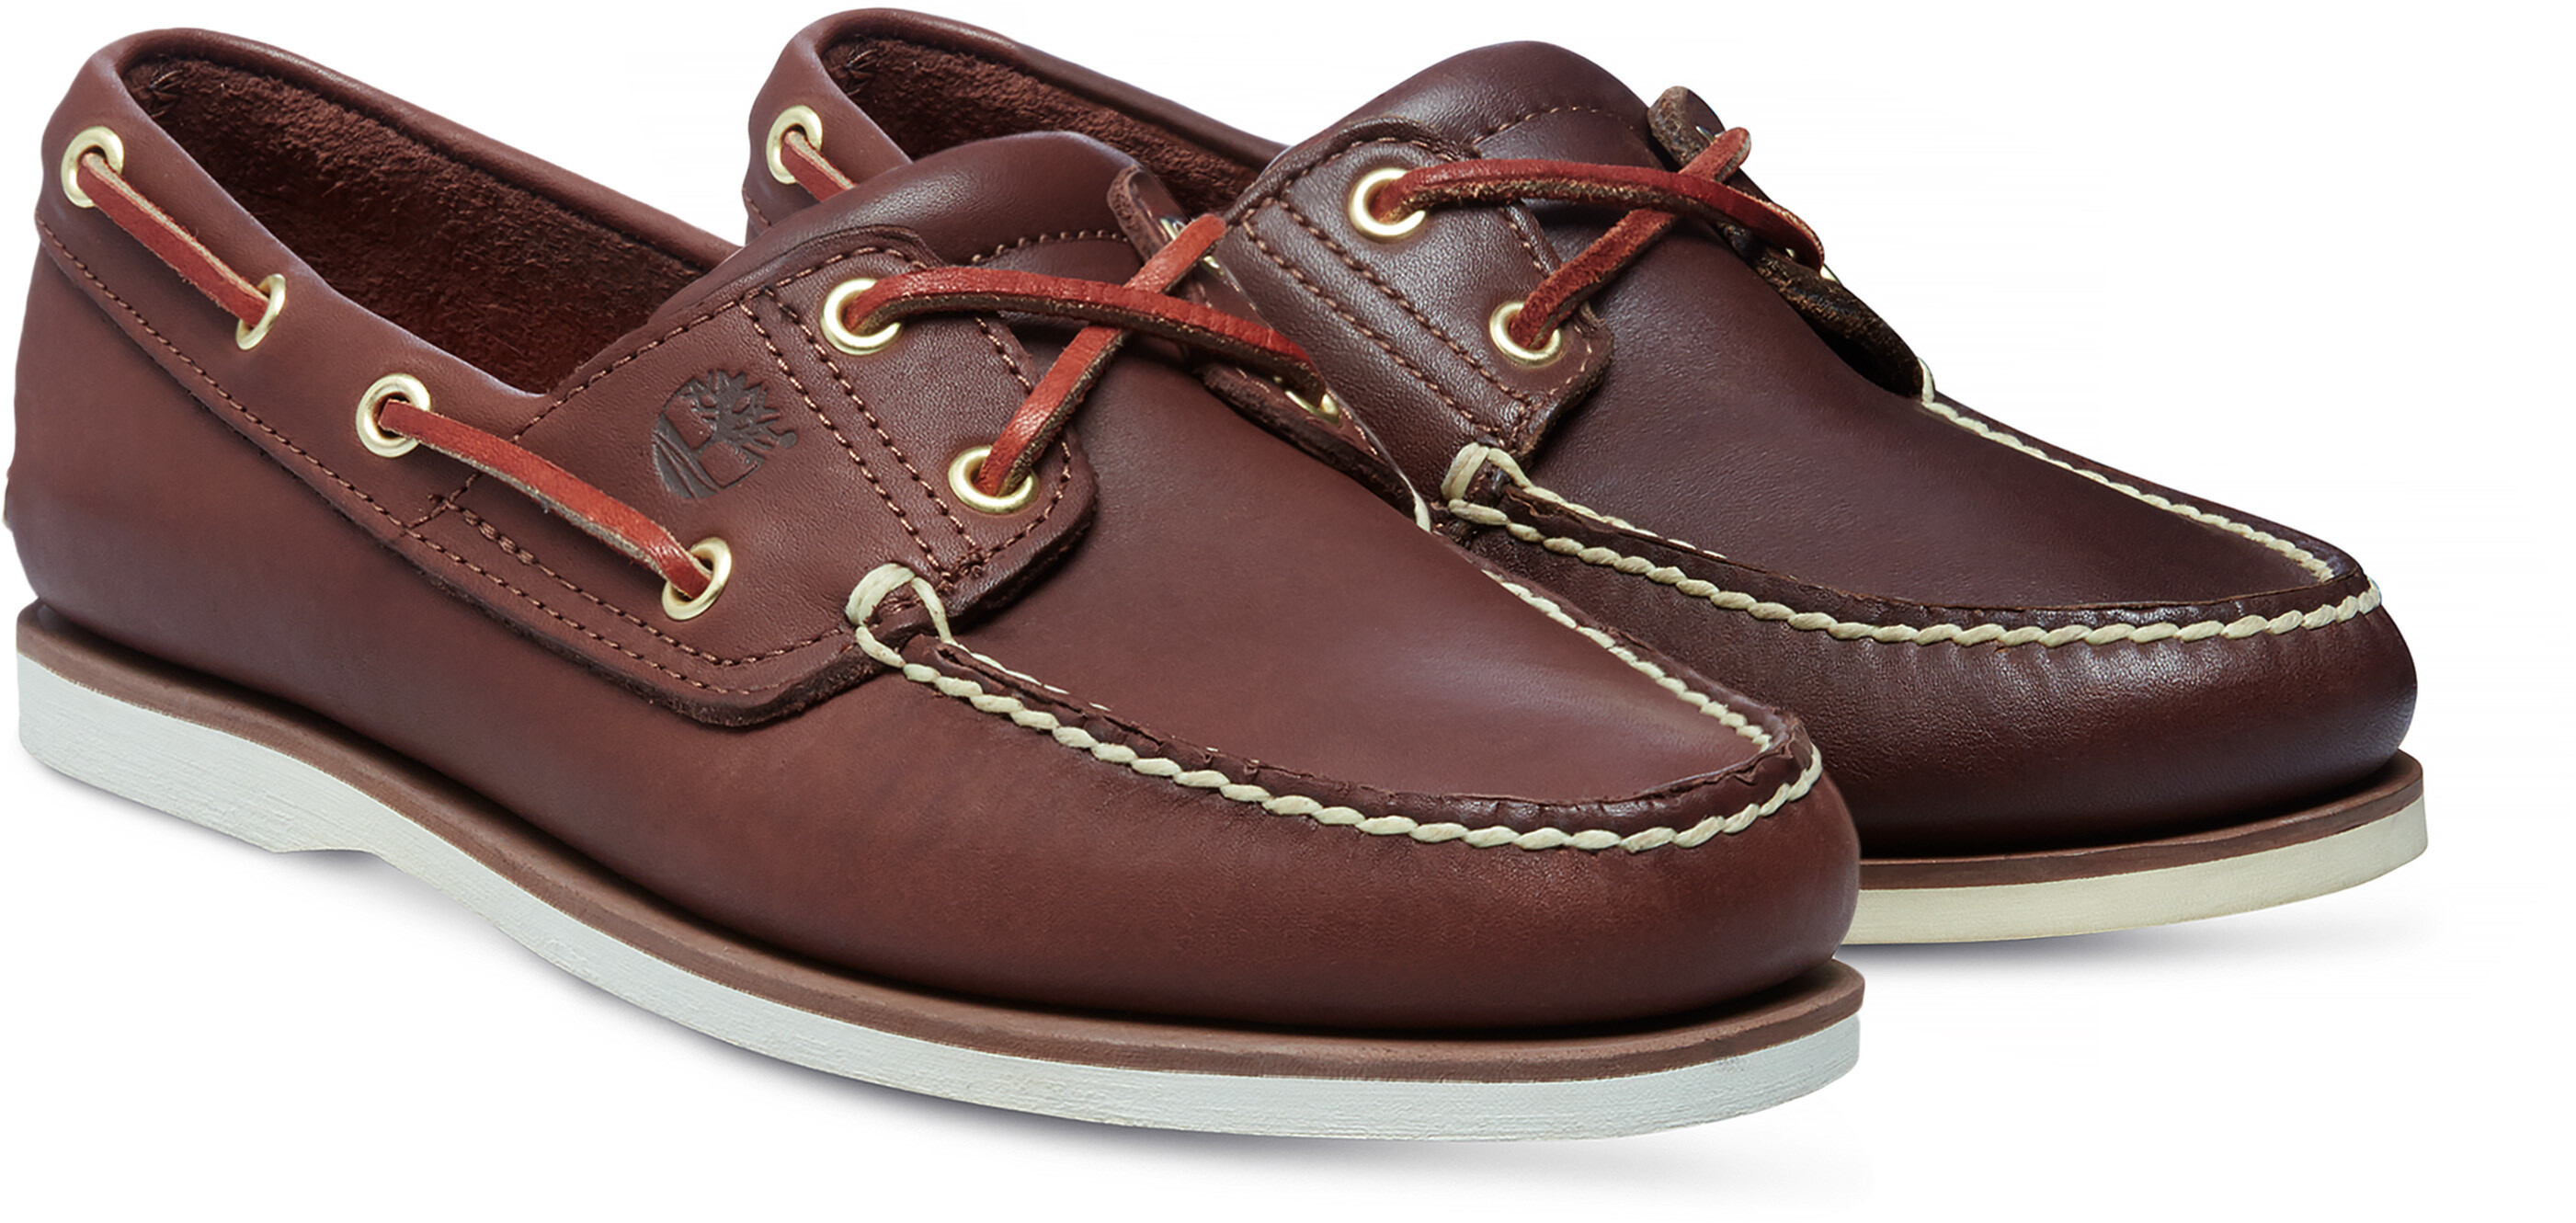 reasonable price sold worldwide check out Timberland Classic 2-Eye Boat Shoes Men medium brown full grain